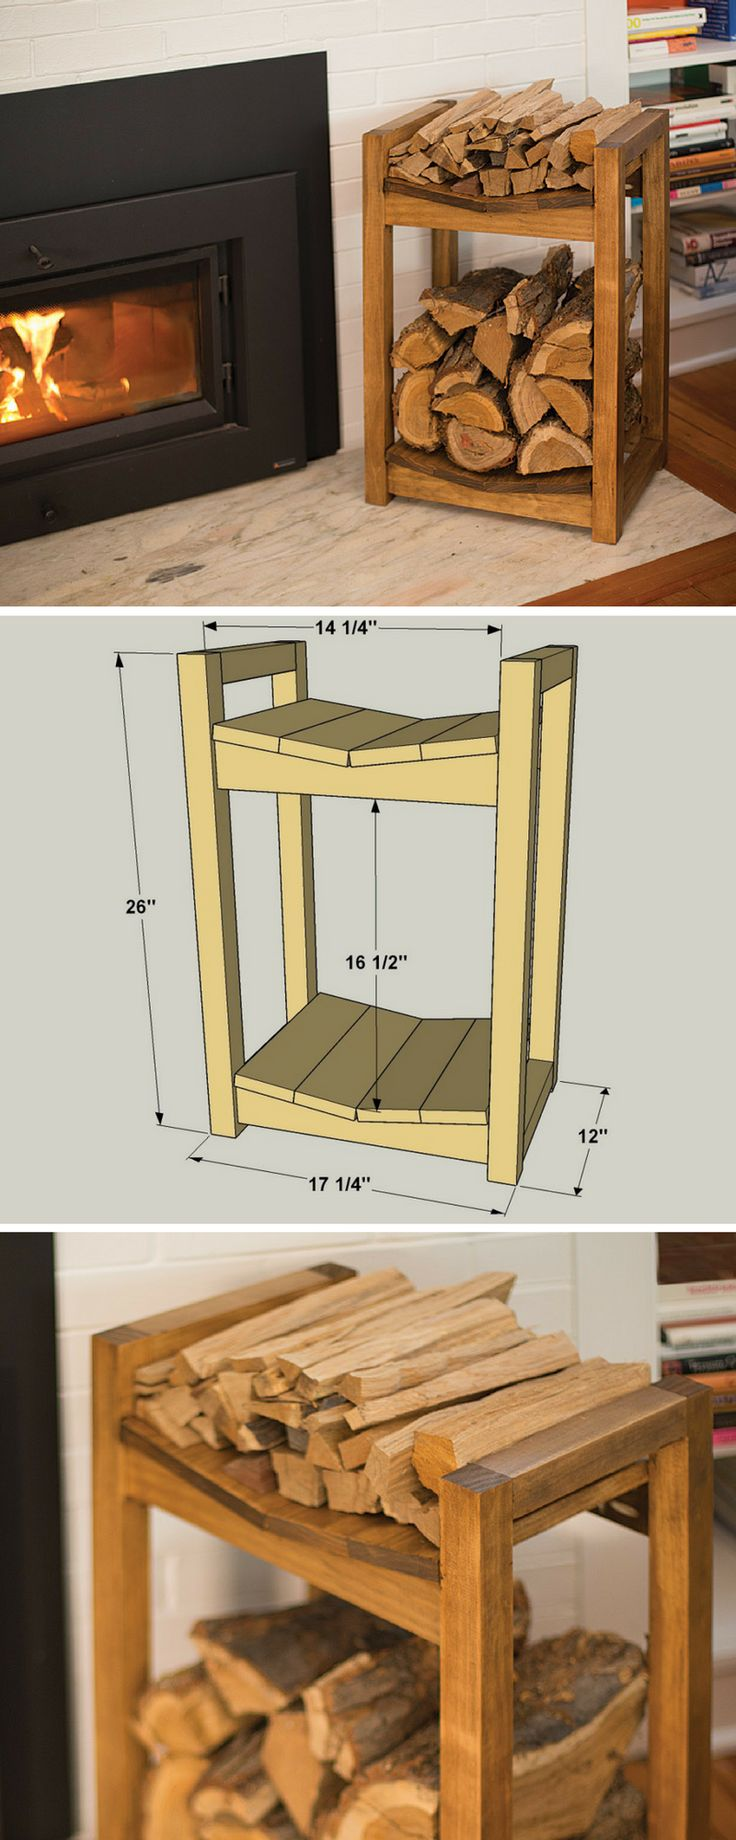 best Woodworking images on Pinterest Woodworking Wood